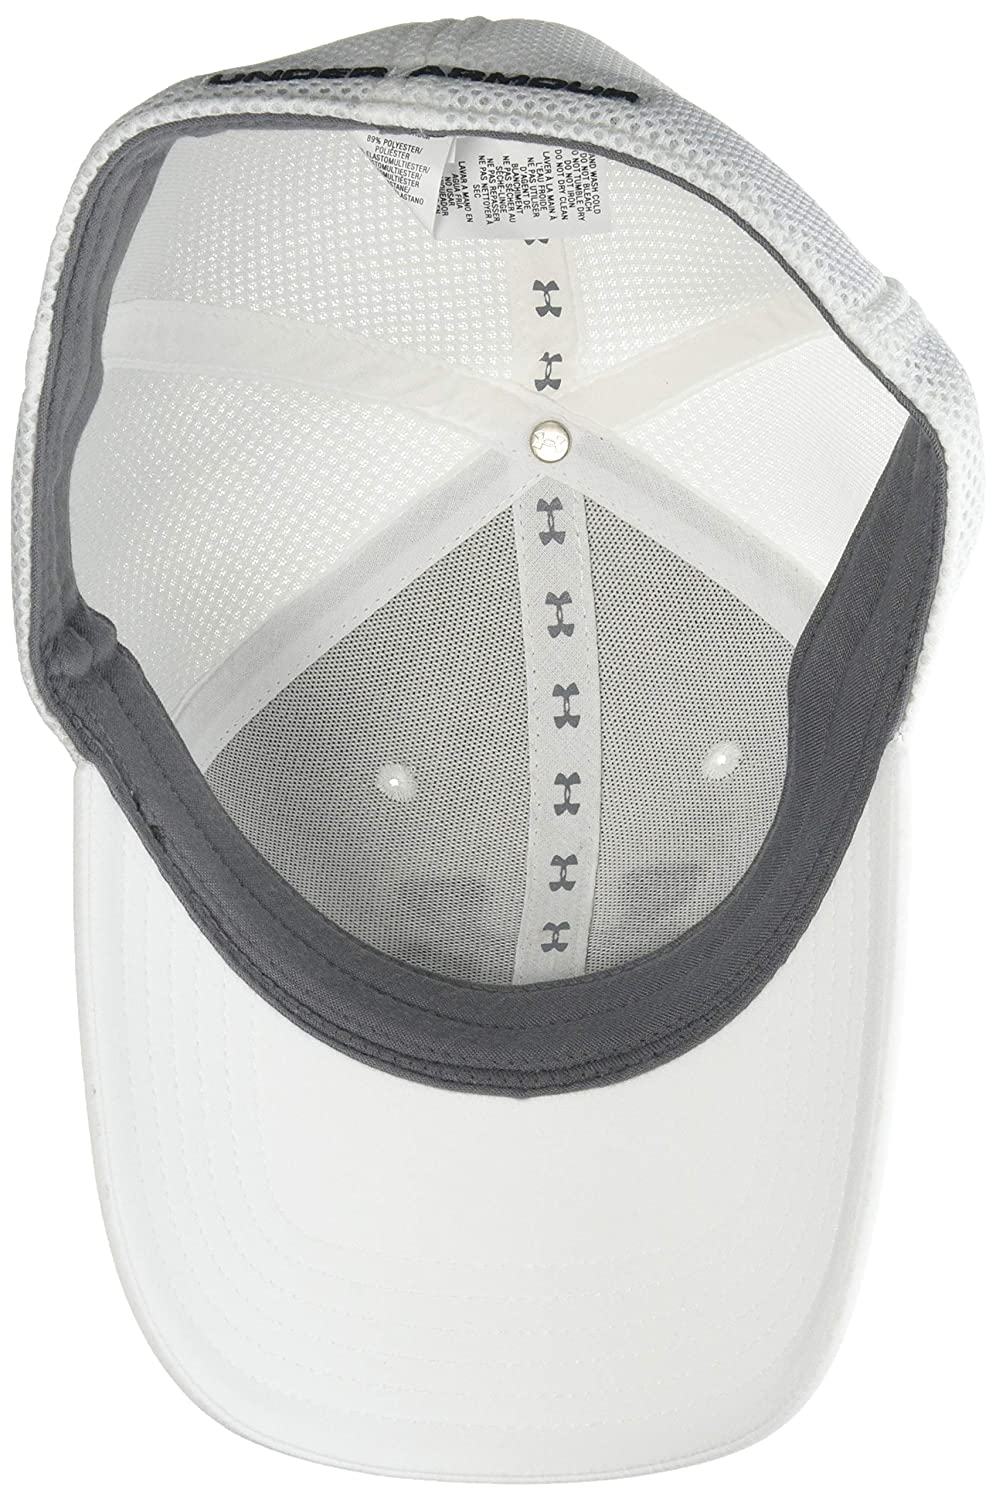 4a2cf12b4e9 Amazon.com  Under Armour Men s Microthread Golf Mesh Cap  Sports   Outdoors